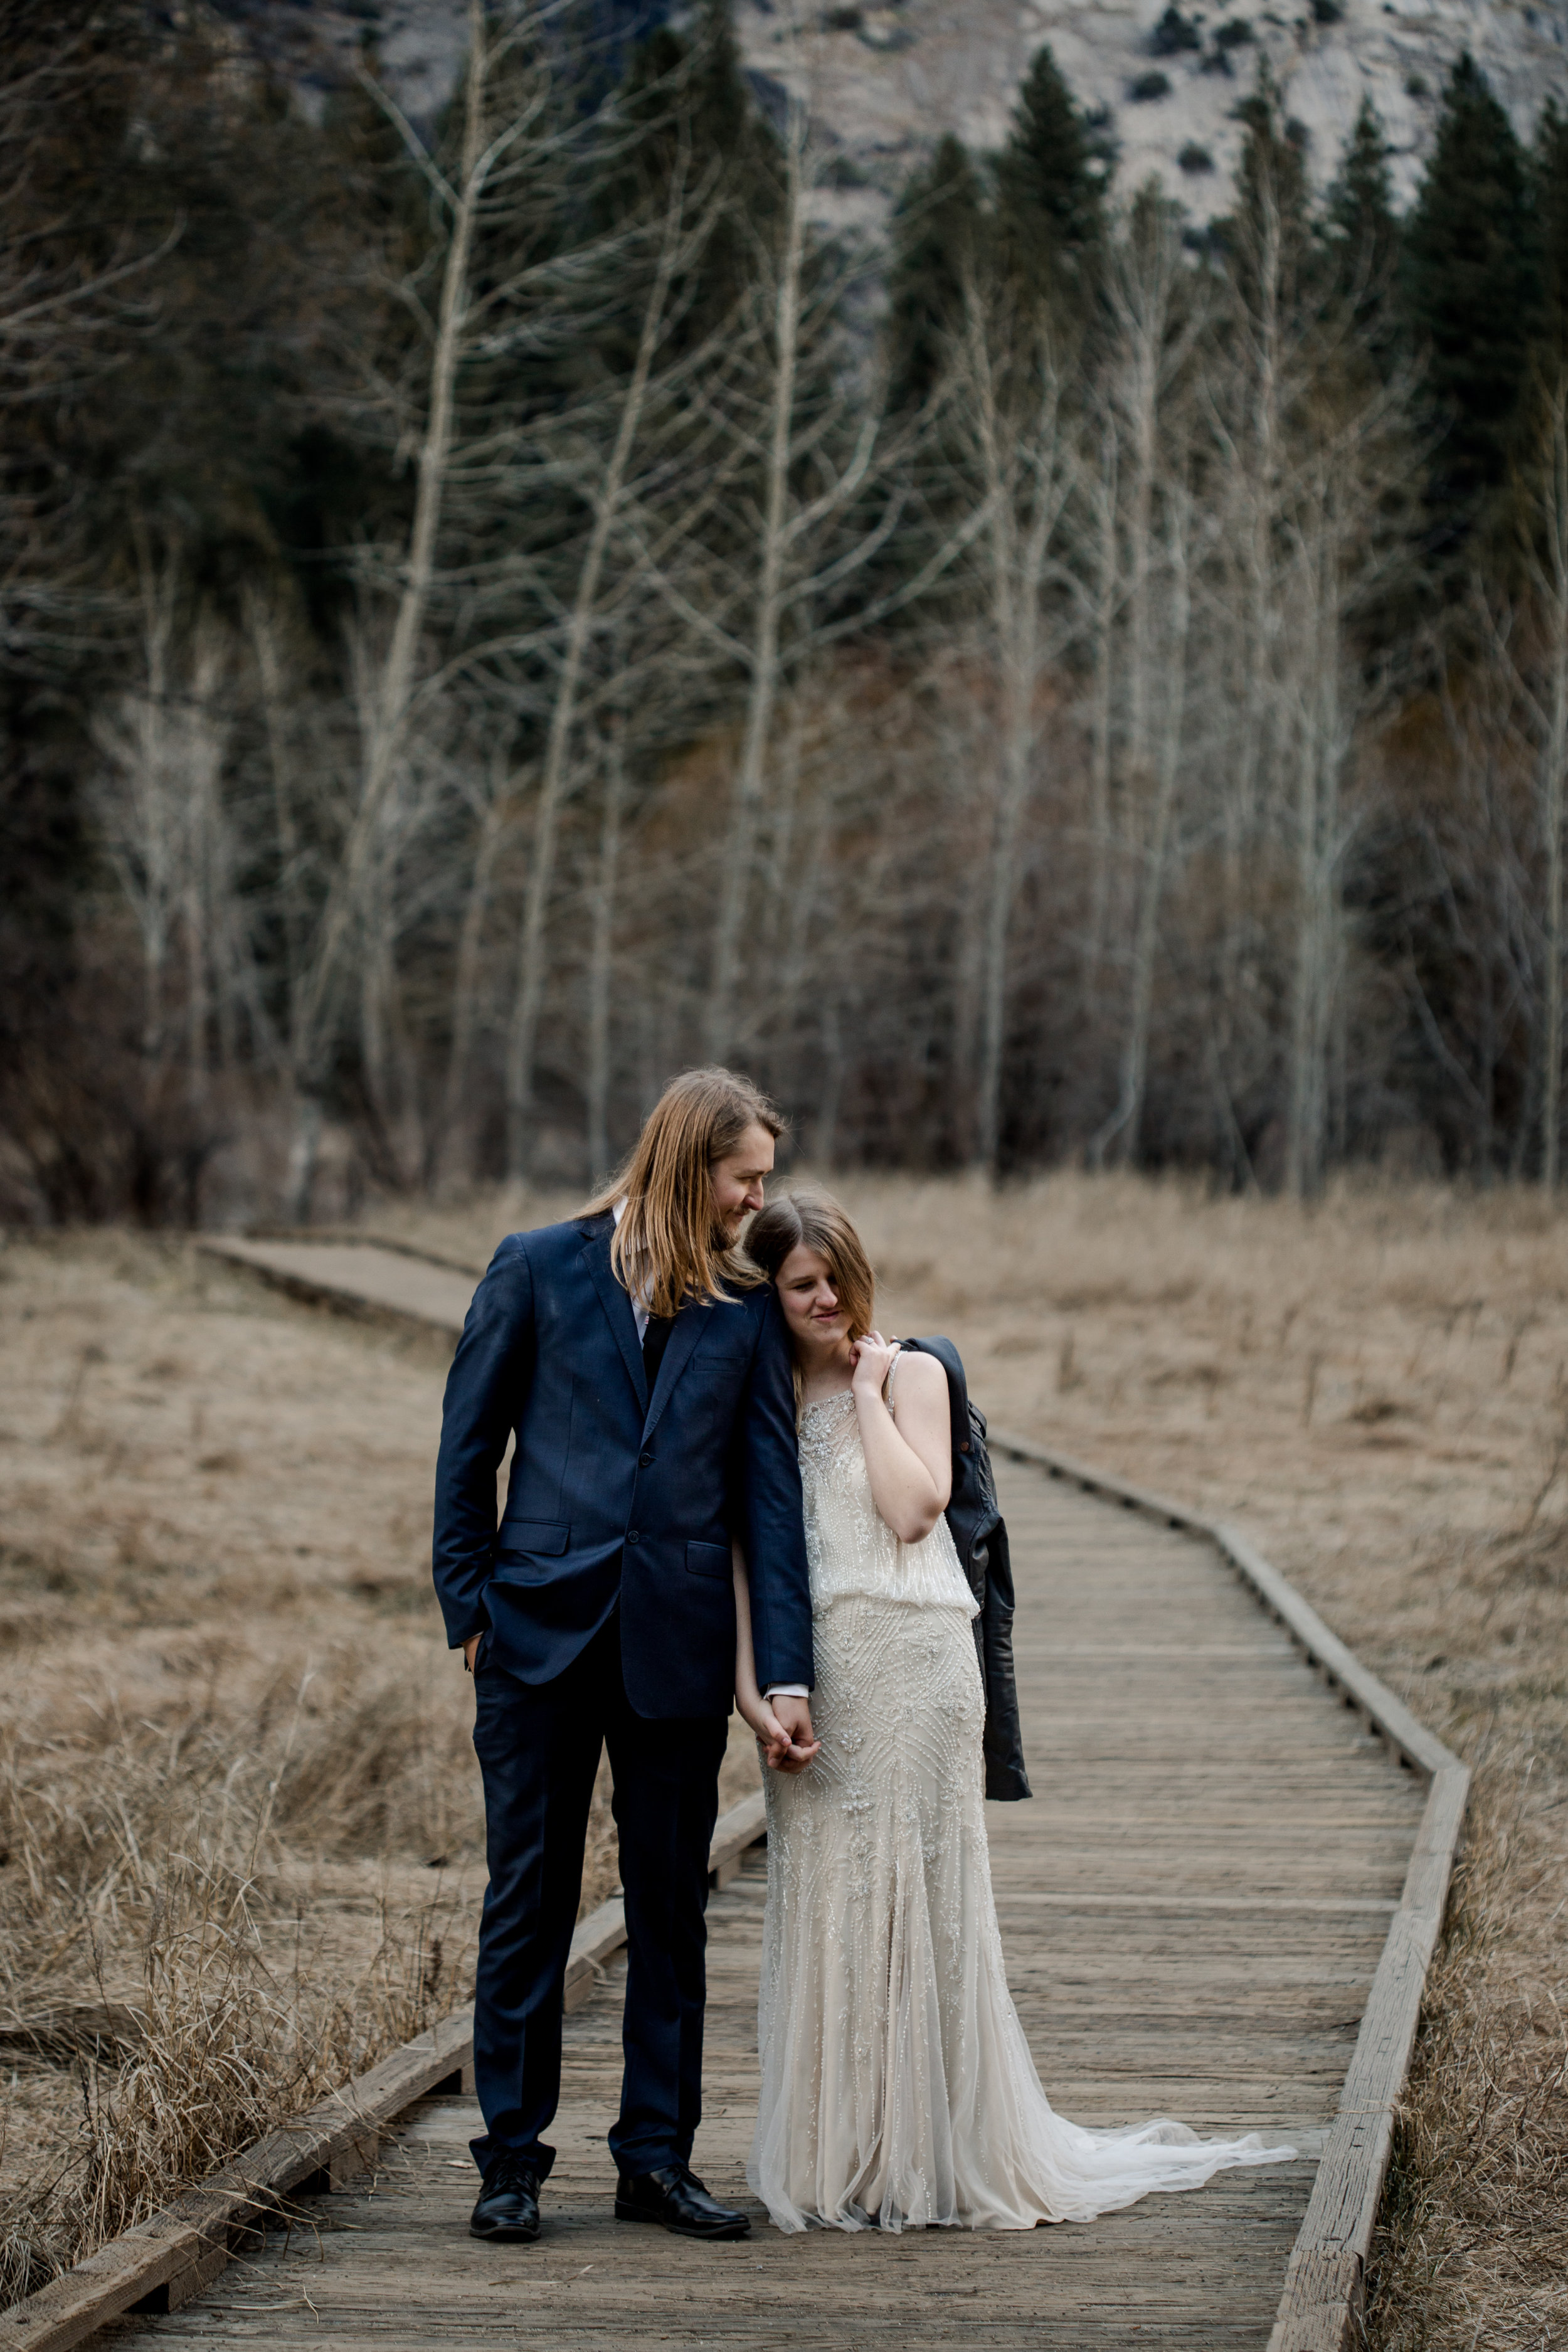 nicole-daacke-photography-yousemite-national-park-elopement-photographer-winter-cloud-moody-elope-inspiration-yosemite-valley-tunnel-view-winter-cloud-fog-weather-wedding-photos-95.jpg